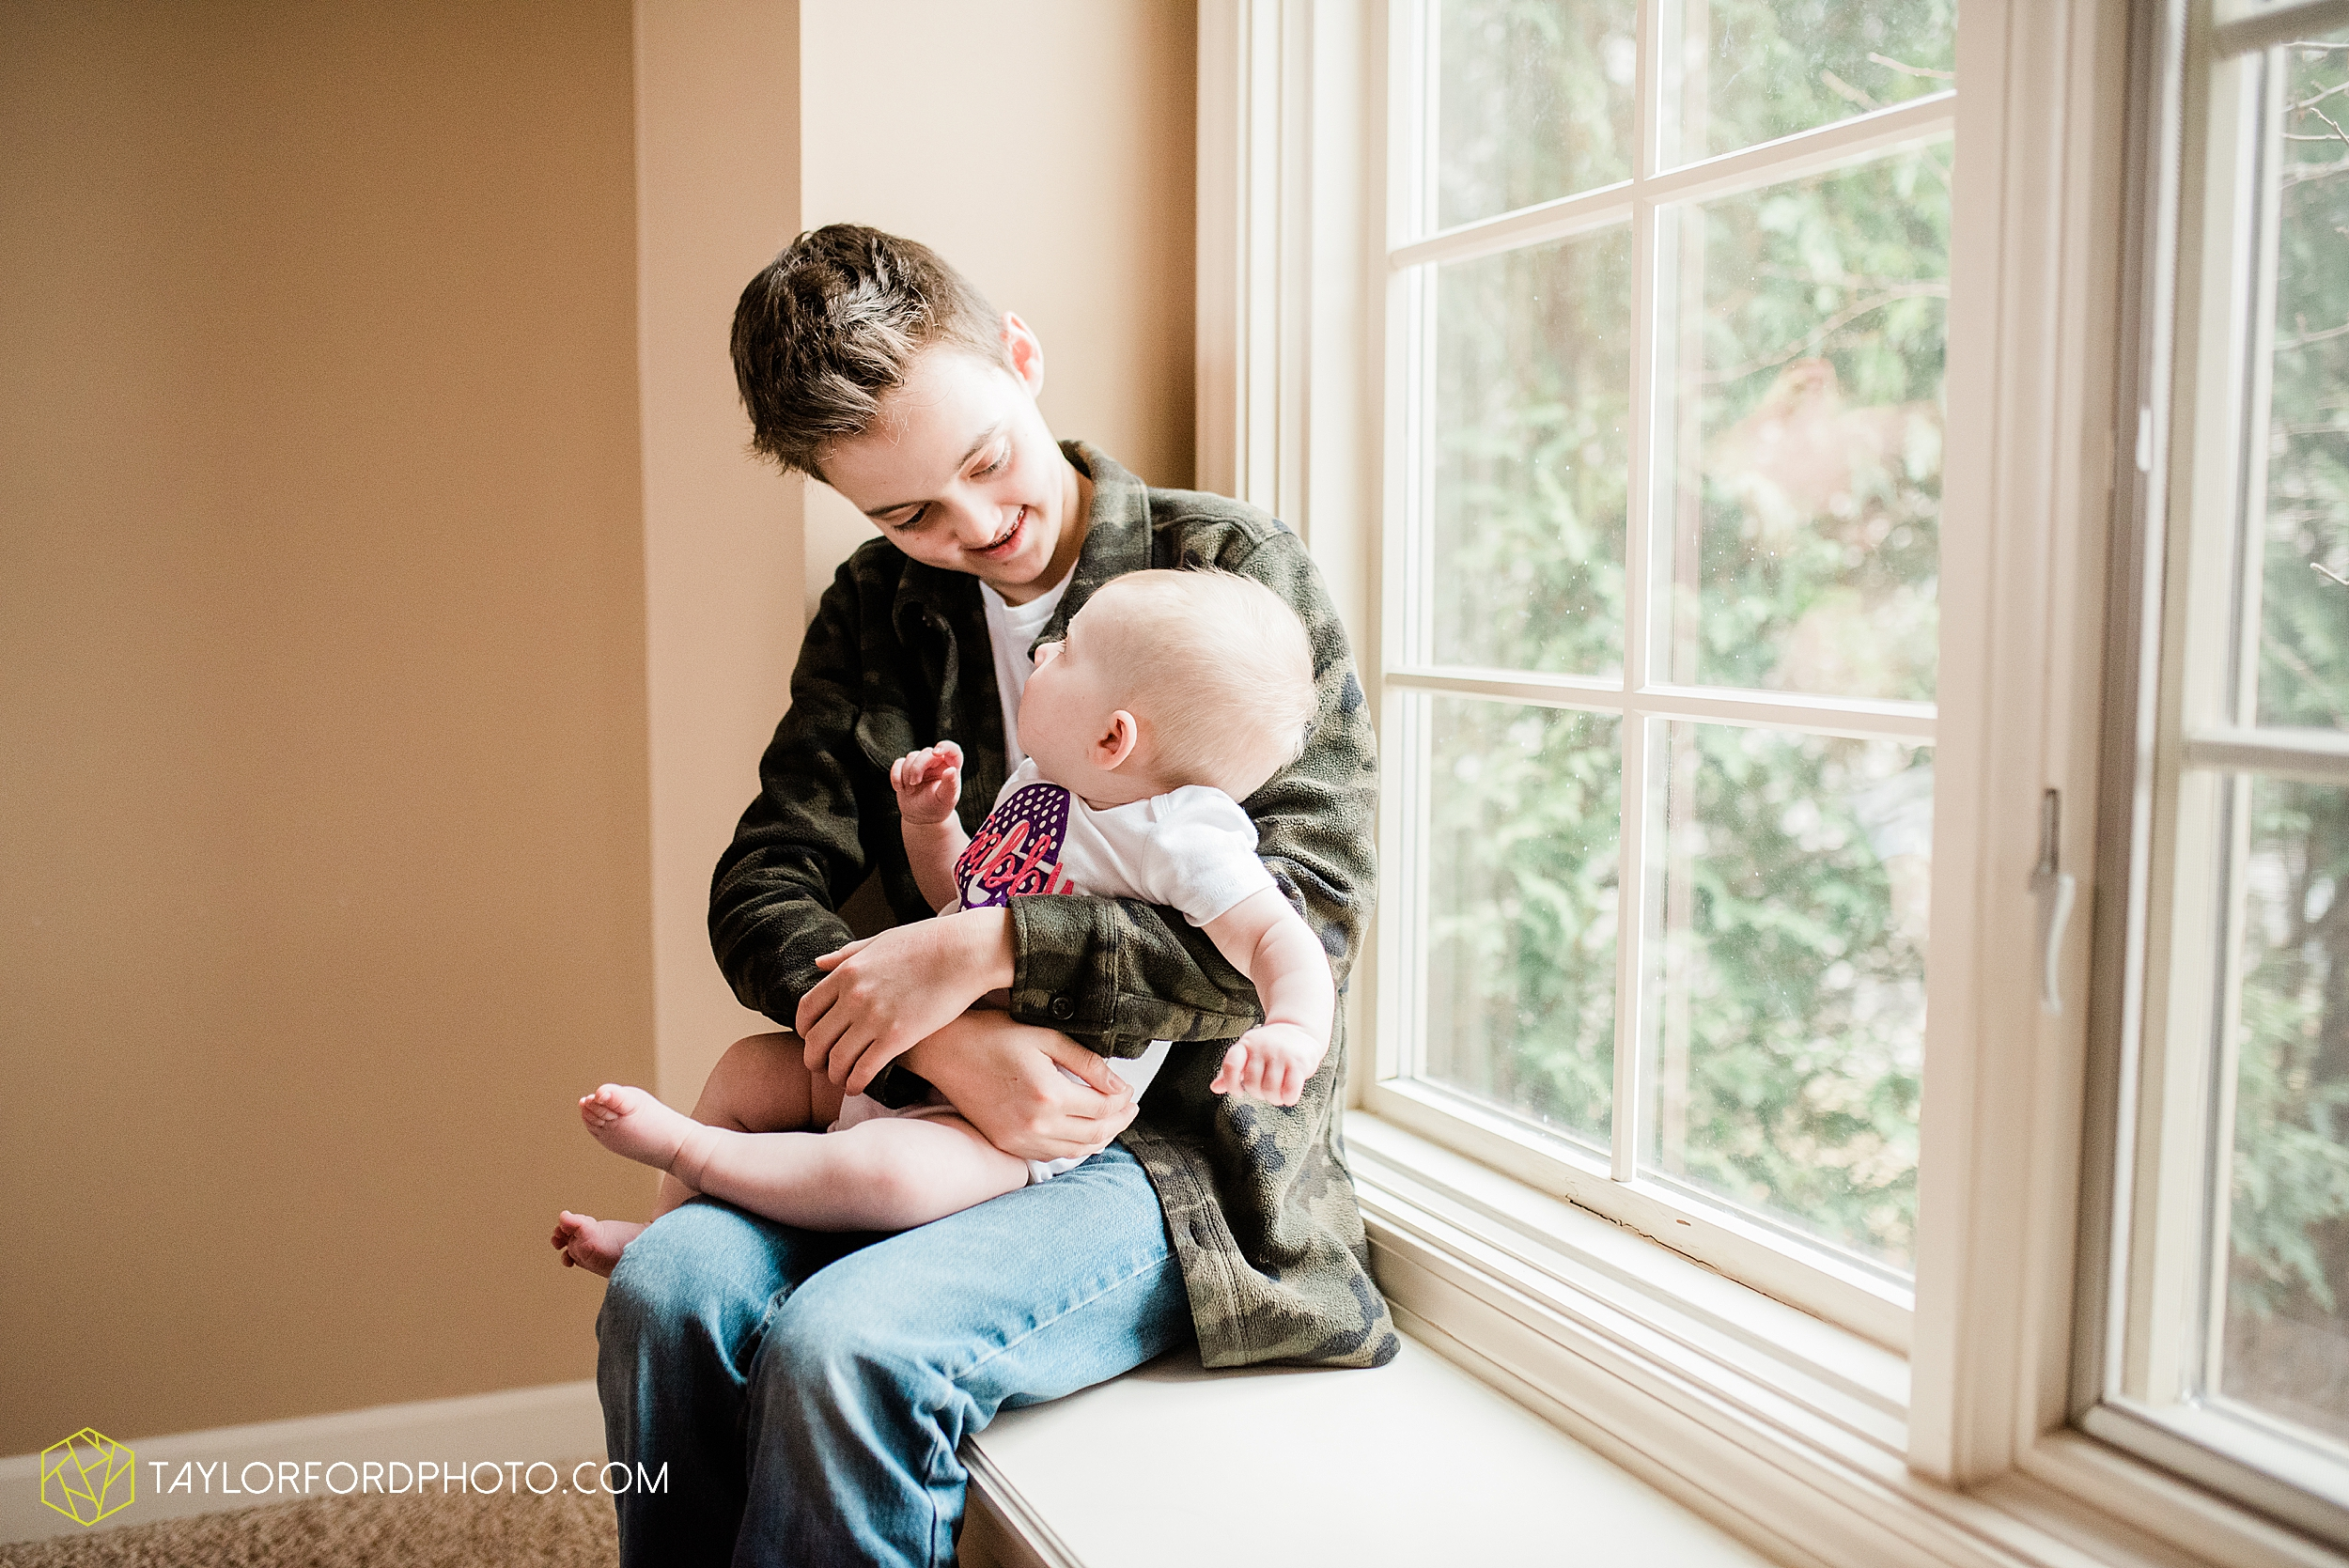 wasserman-family-at-home-huntertown-child-fort-wayne-indiana-newborn-photographer-photography-taylor-ford-hirschy-photographer_2508.jpg